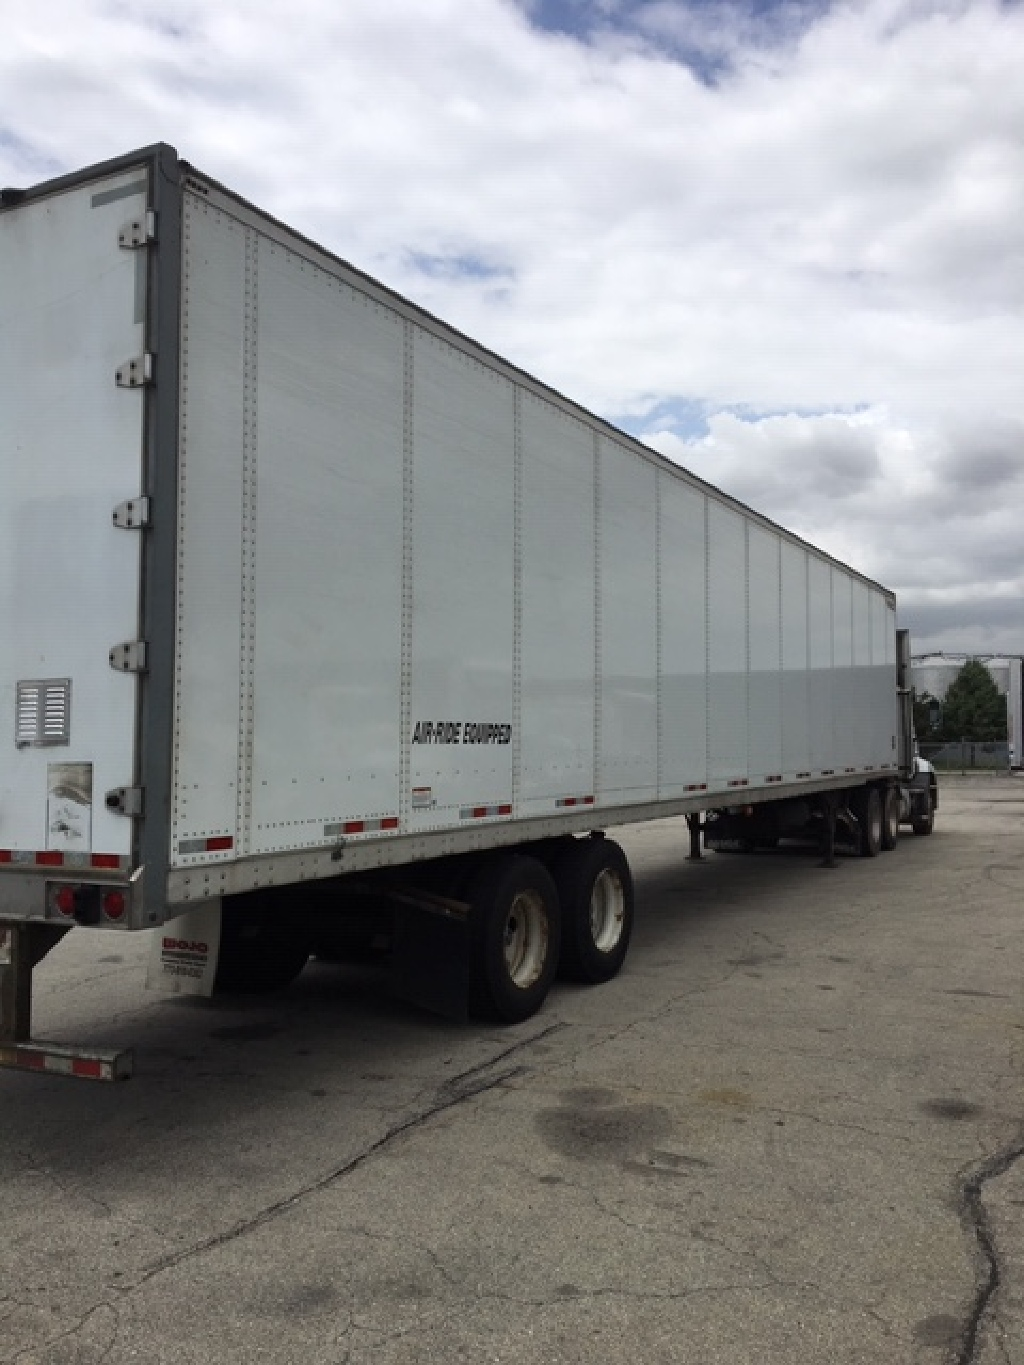 USED 2016 GREAT DANE CHAMPION VAN TRAILER #176169